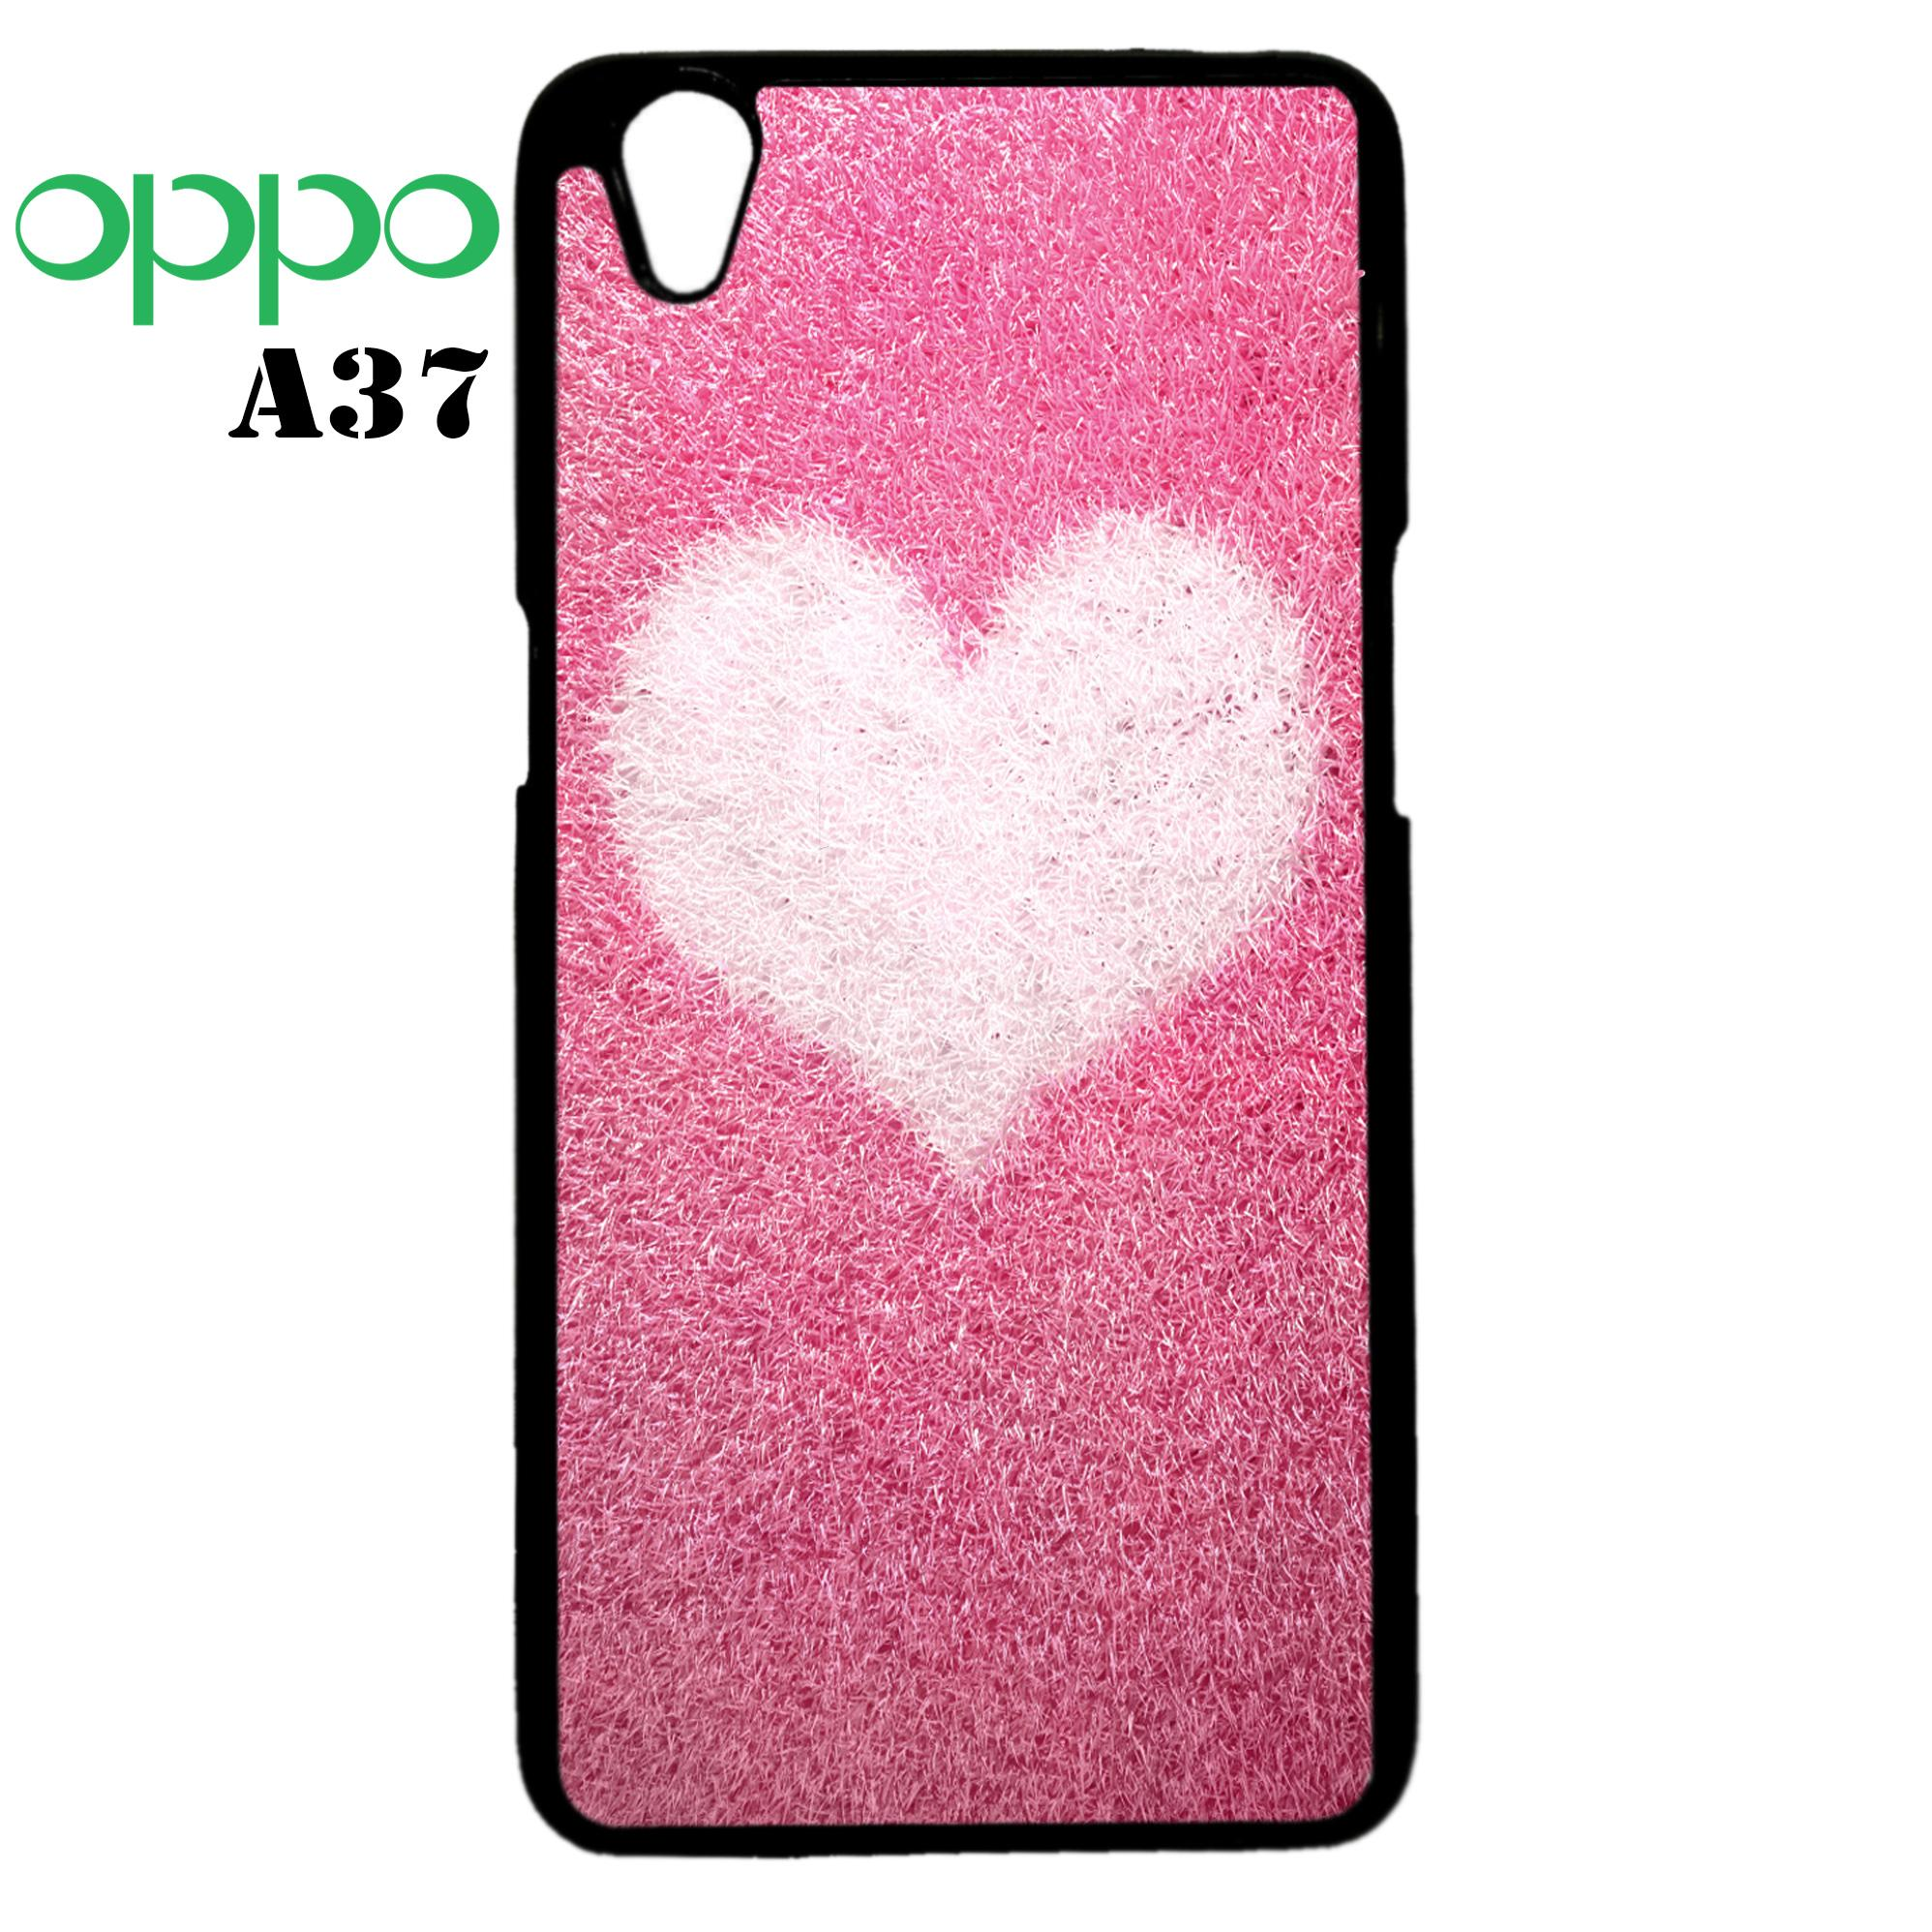 Case Custom Fashion Printing Phone Case New Oppo A37/Neo 9